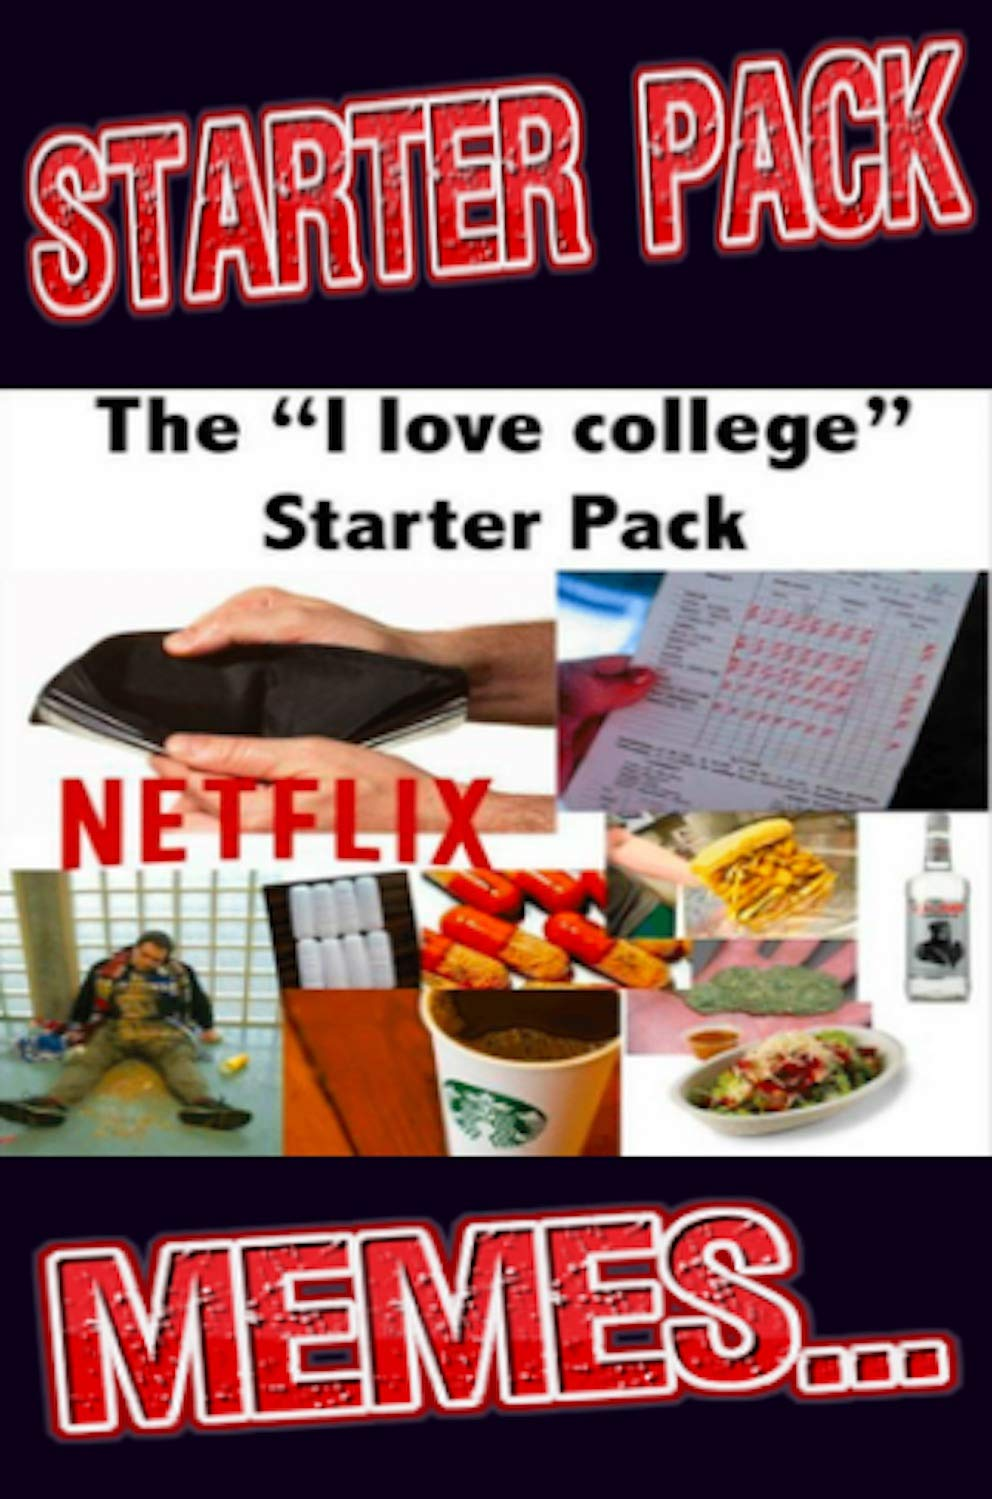 Starter Pack M££MS: Very Funny Jokes And Menes - Best Humor Hits